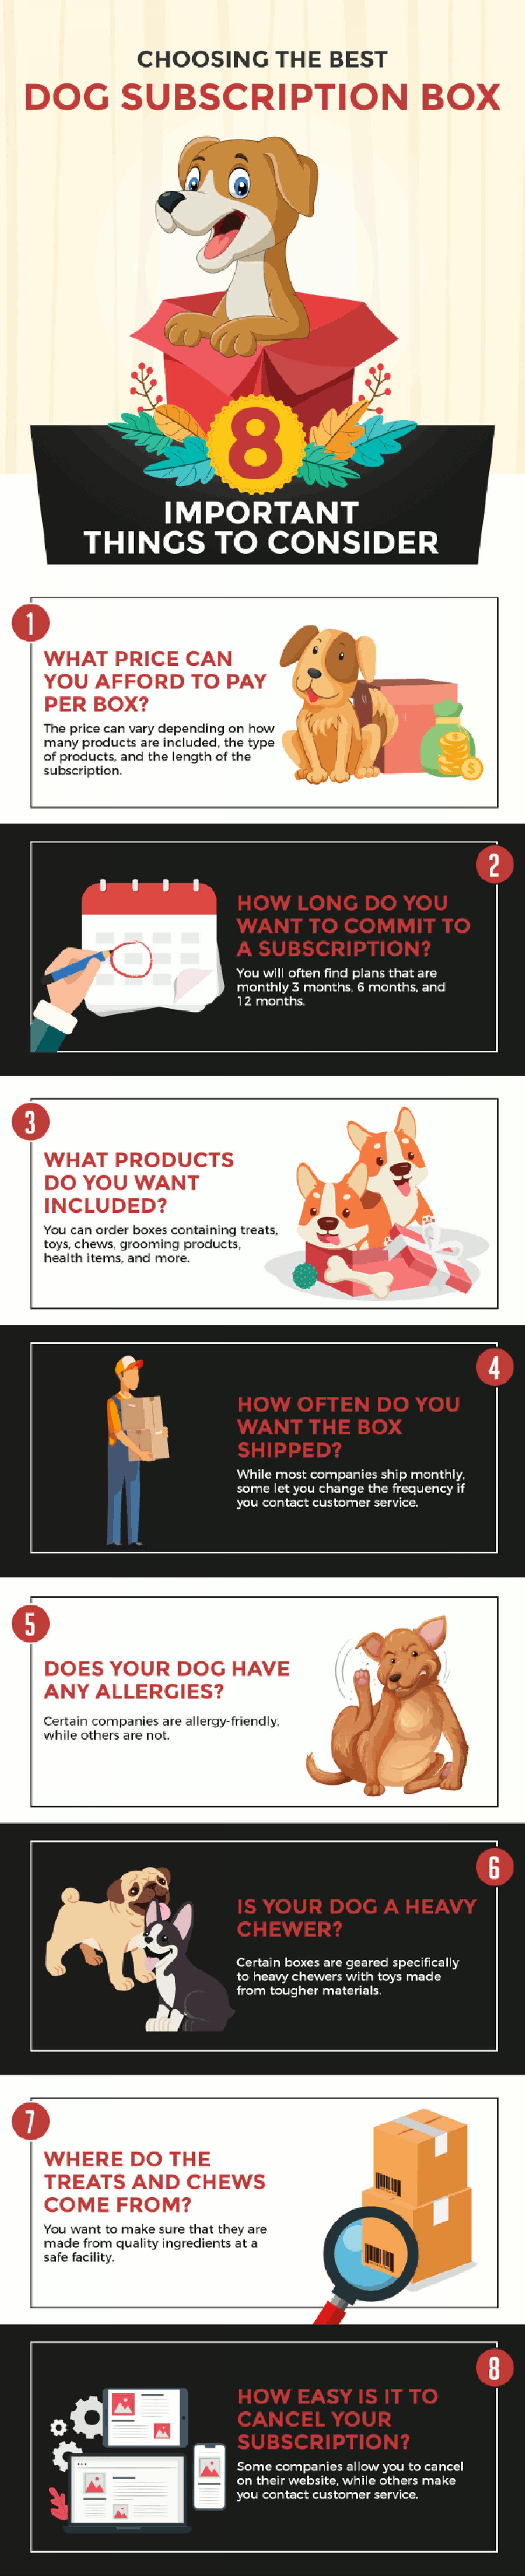 Choosing the Best Dog Subscription Box: 8 Important Things to Consider Infographic